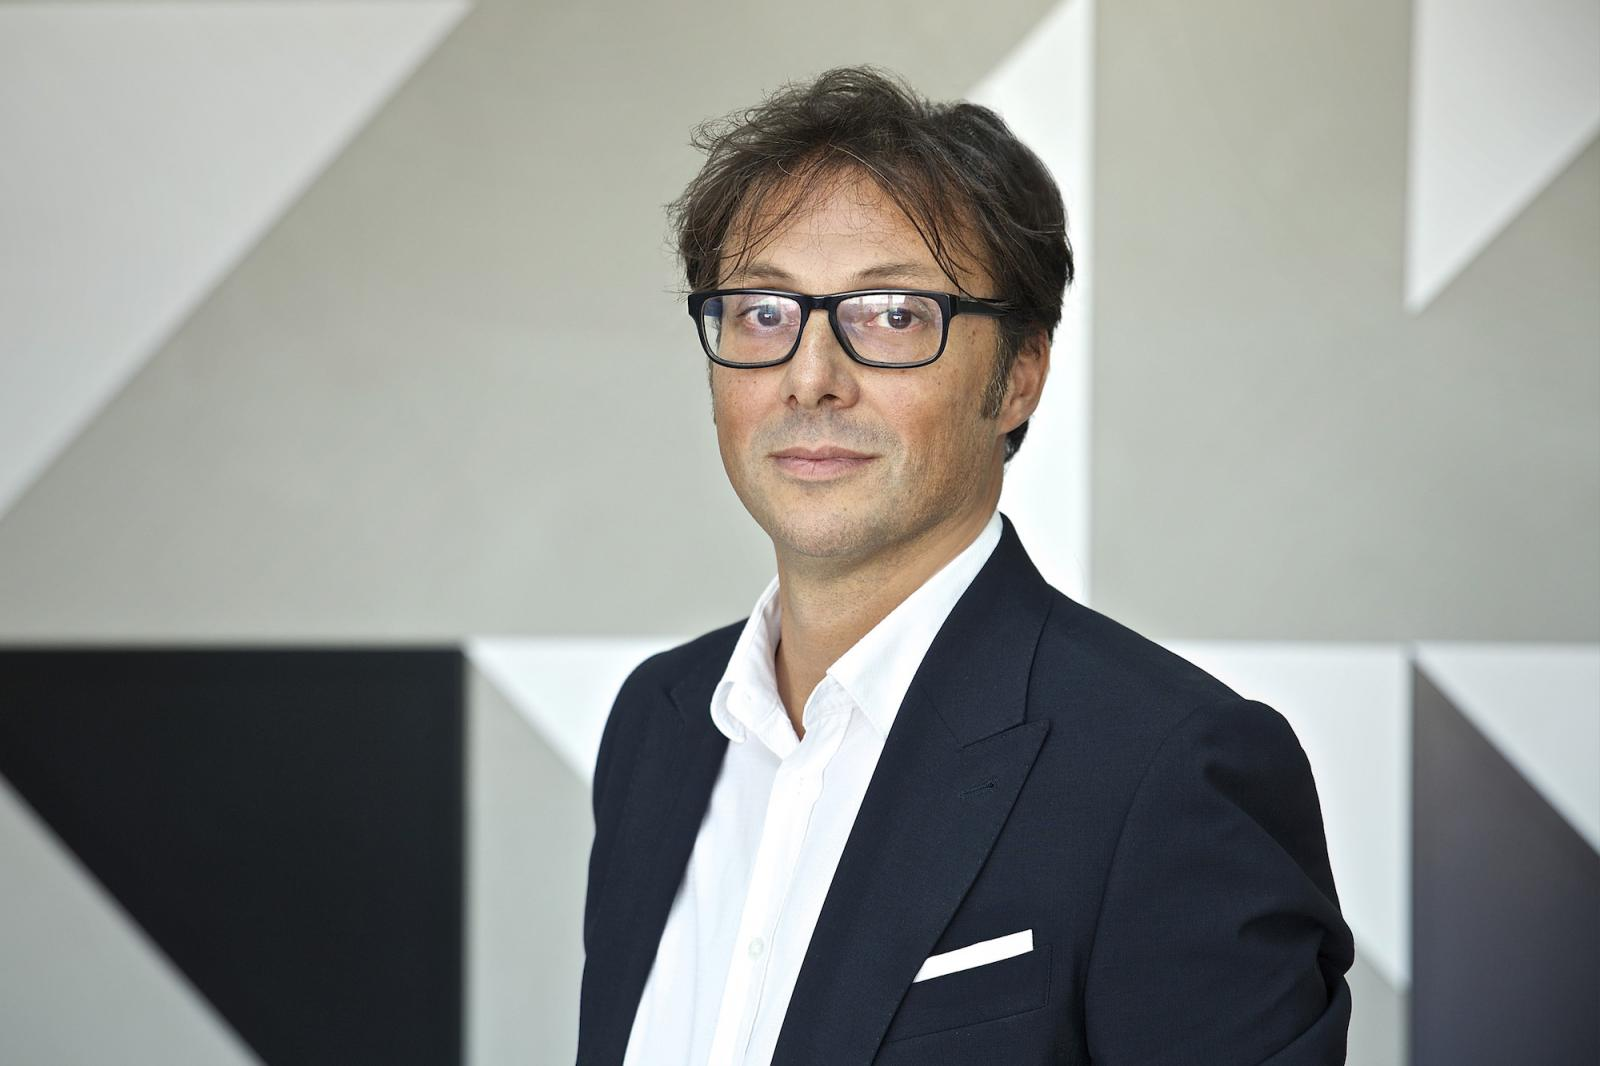 DAVIDE COLLI: A NEW CHIEF OPERATING OFFICER FOR CERAMICHE PIEMME